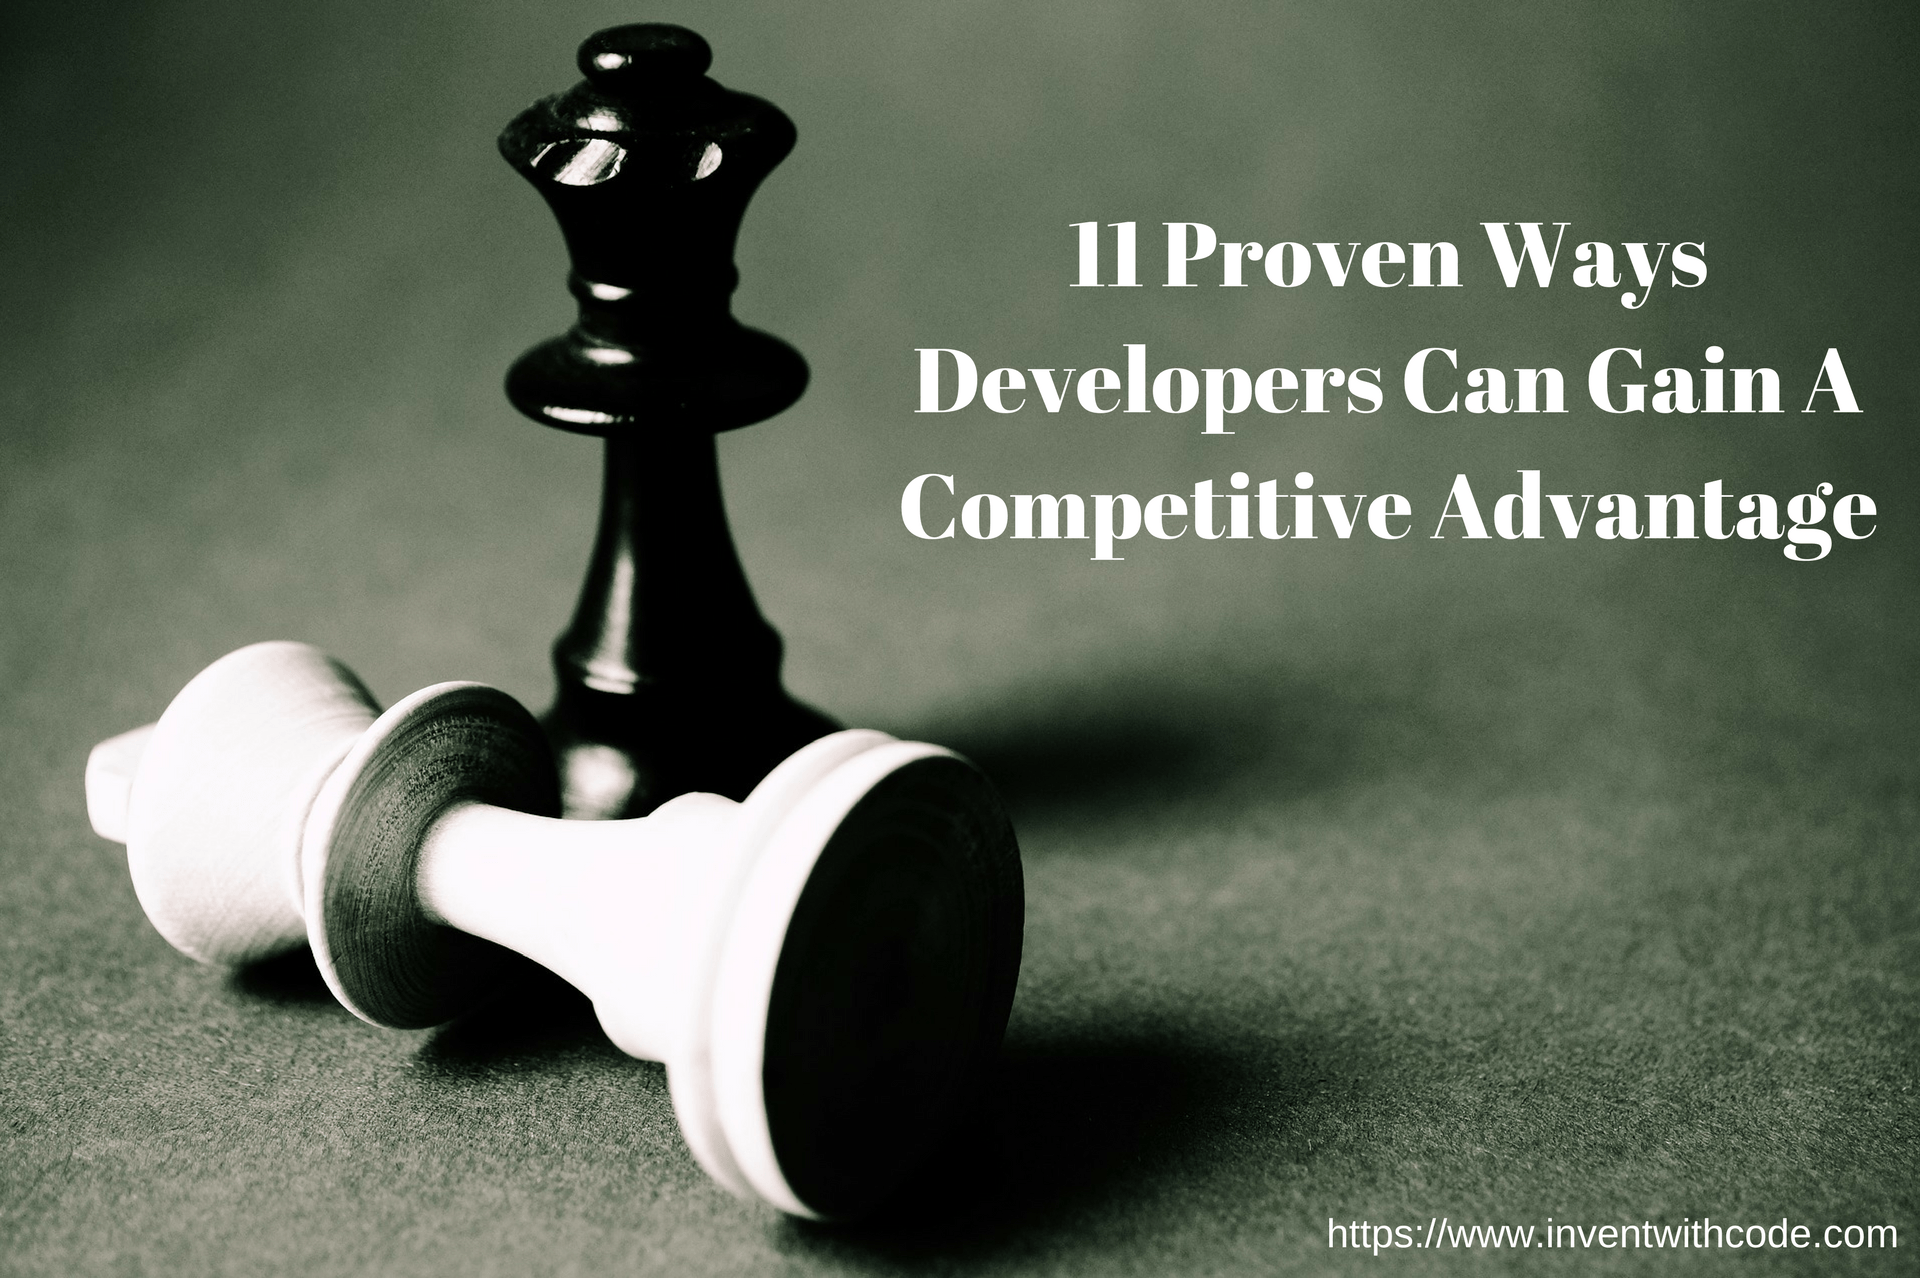 11 Proven Ways Developers Can Gain A Competitive Advantage